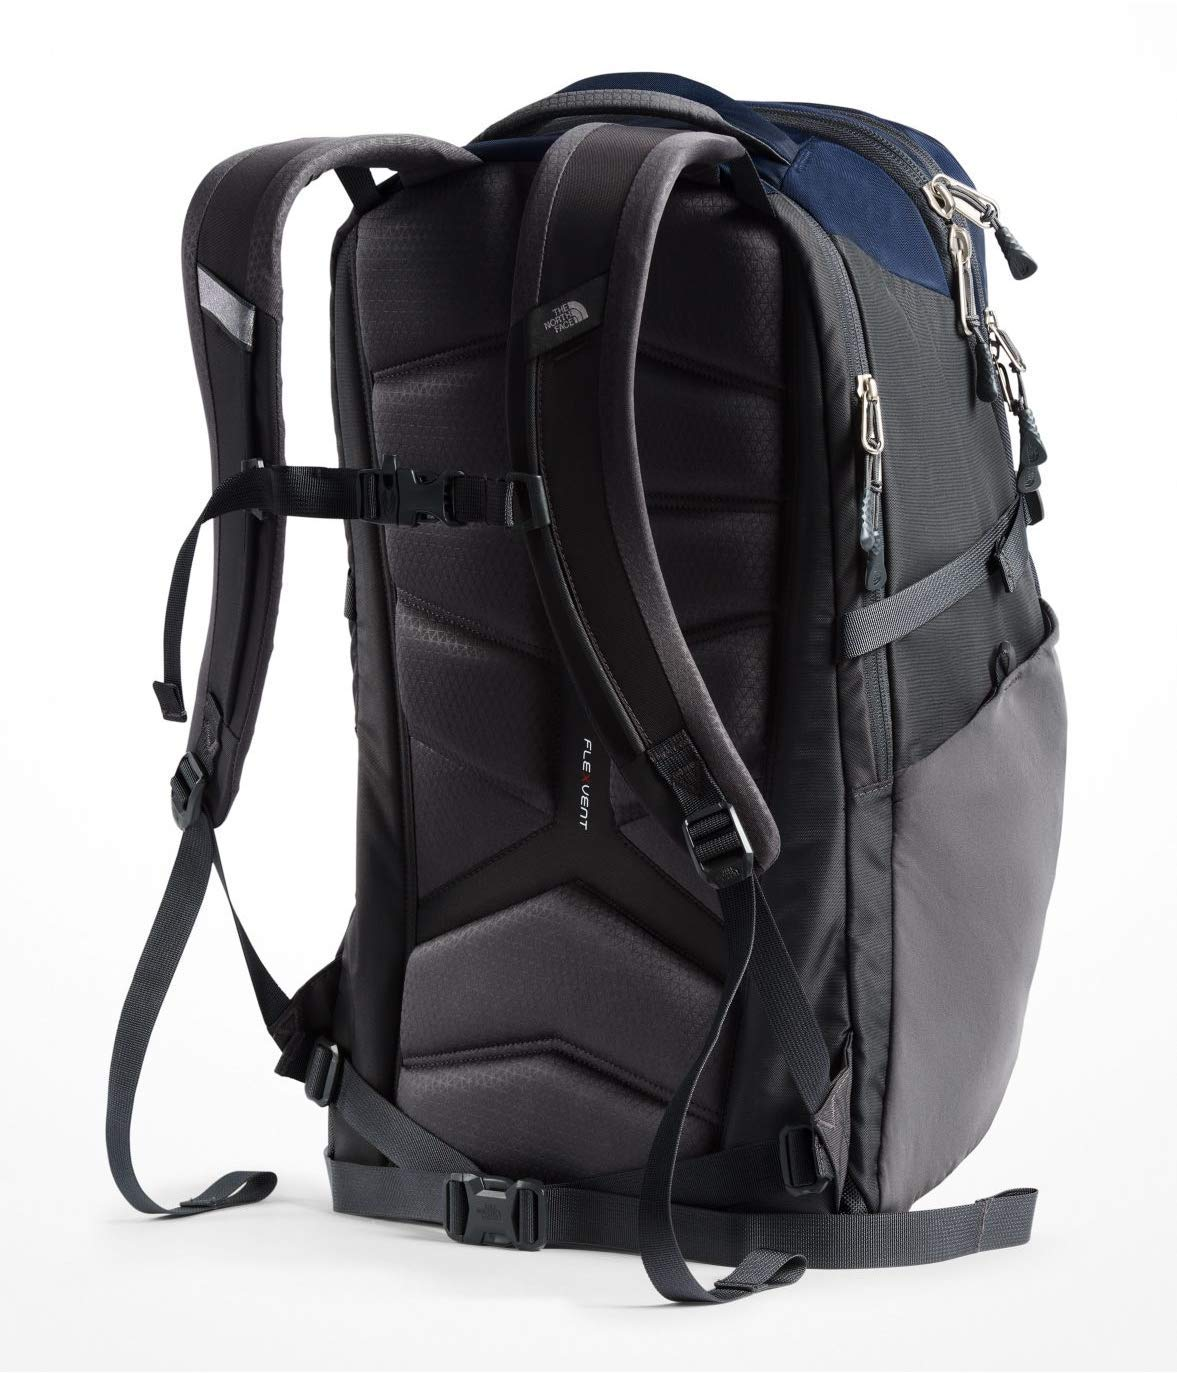 a067187eb The North Face Router Transit Backpack, NF0A3KXK, One Size (COSMIC  BLUE/ASPHALT GREY)